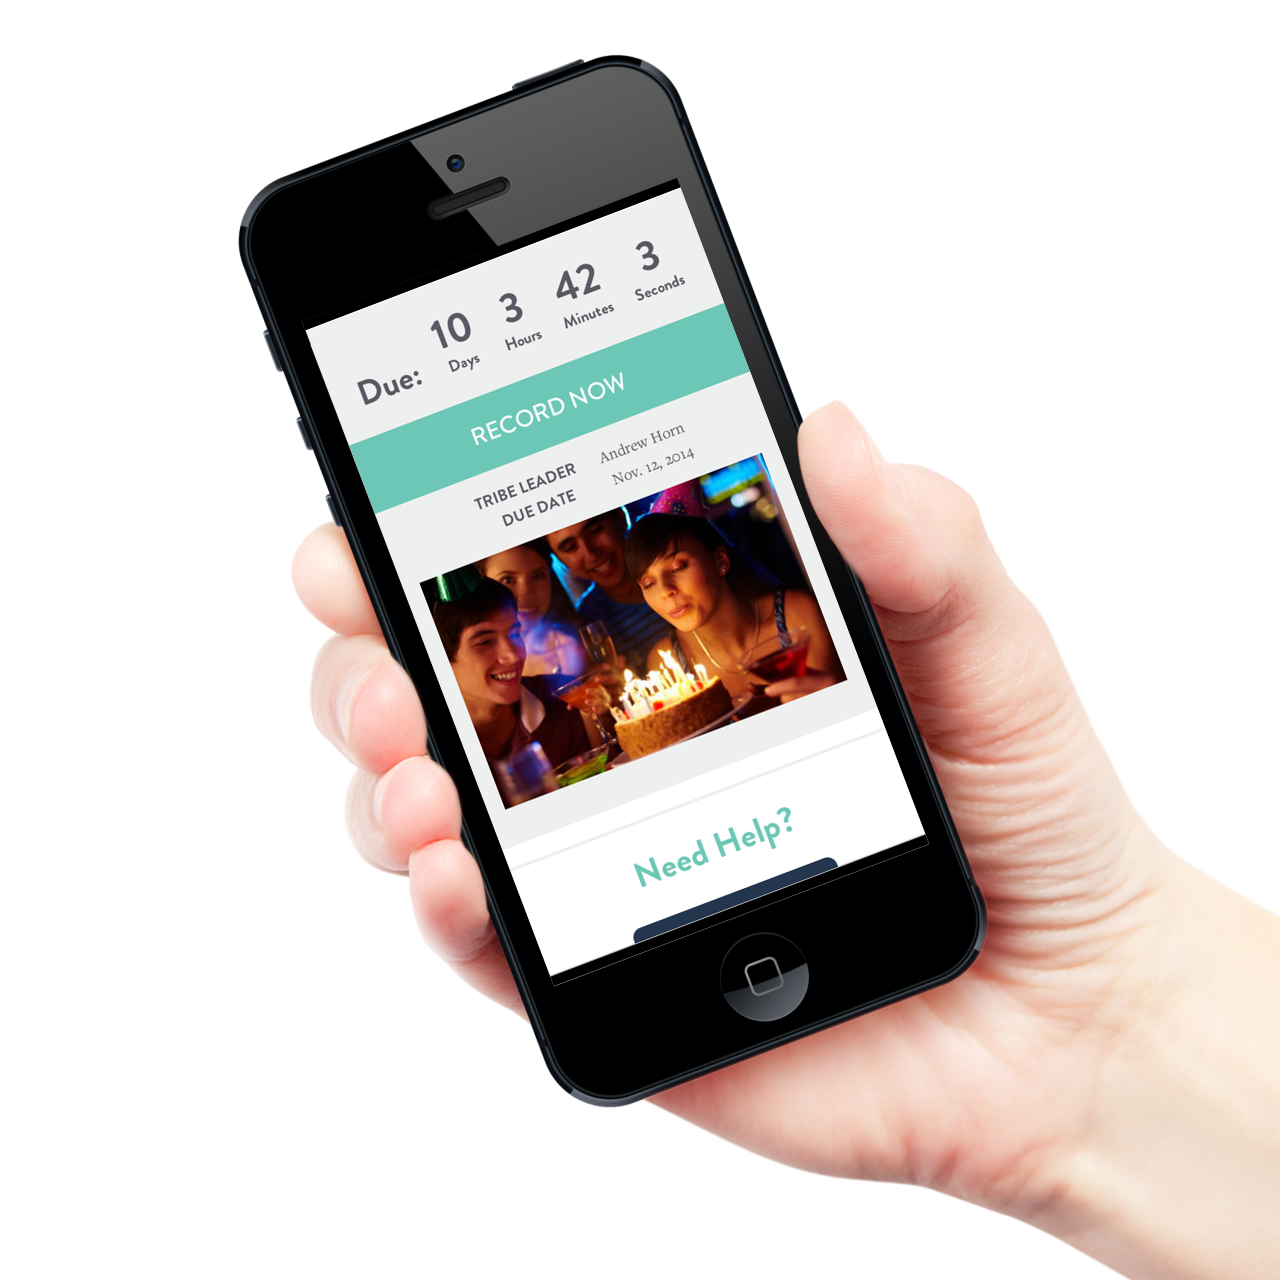 3. Mobile - Film and submit video